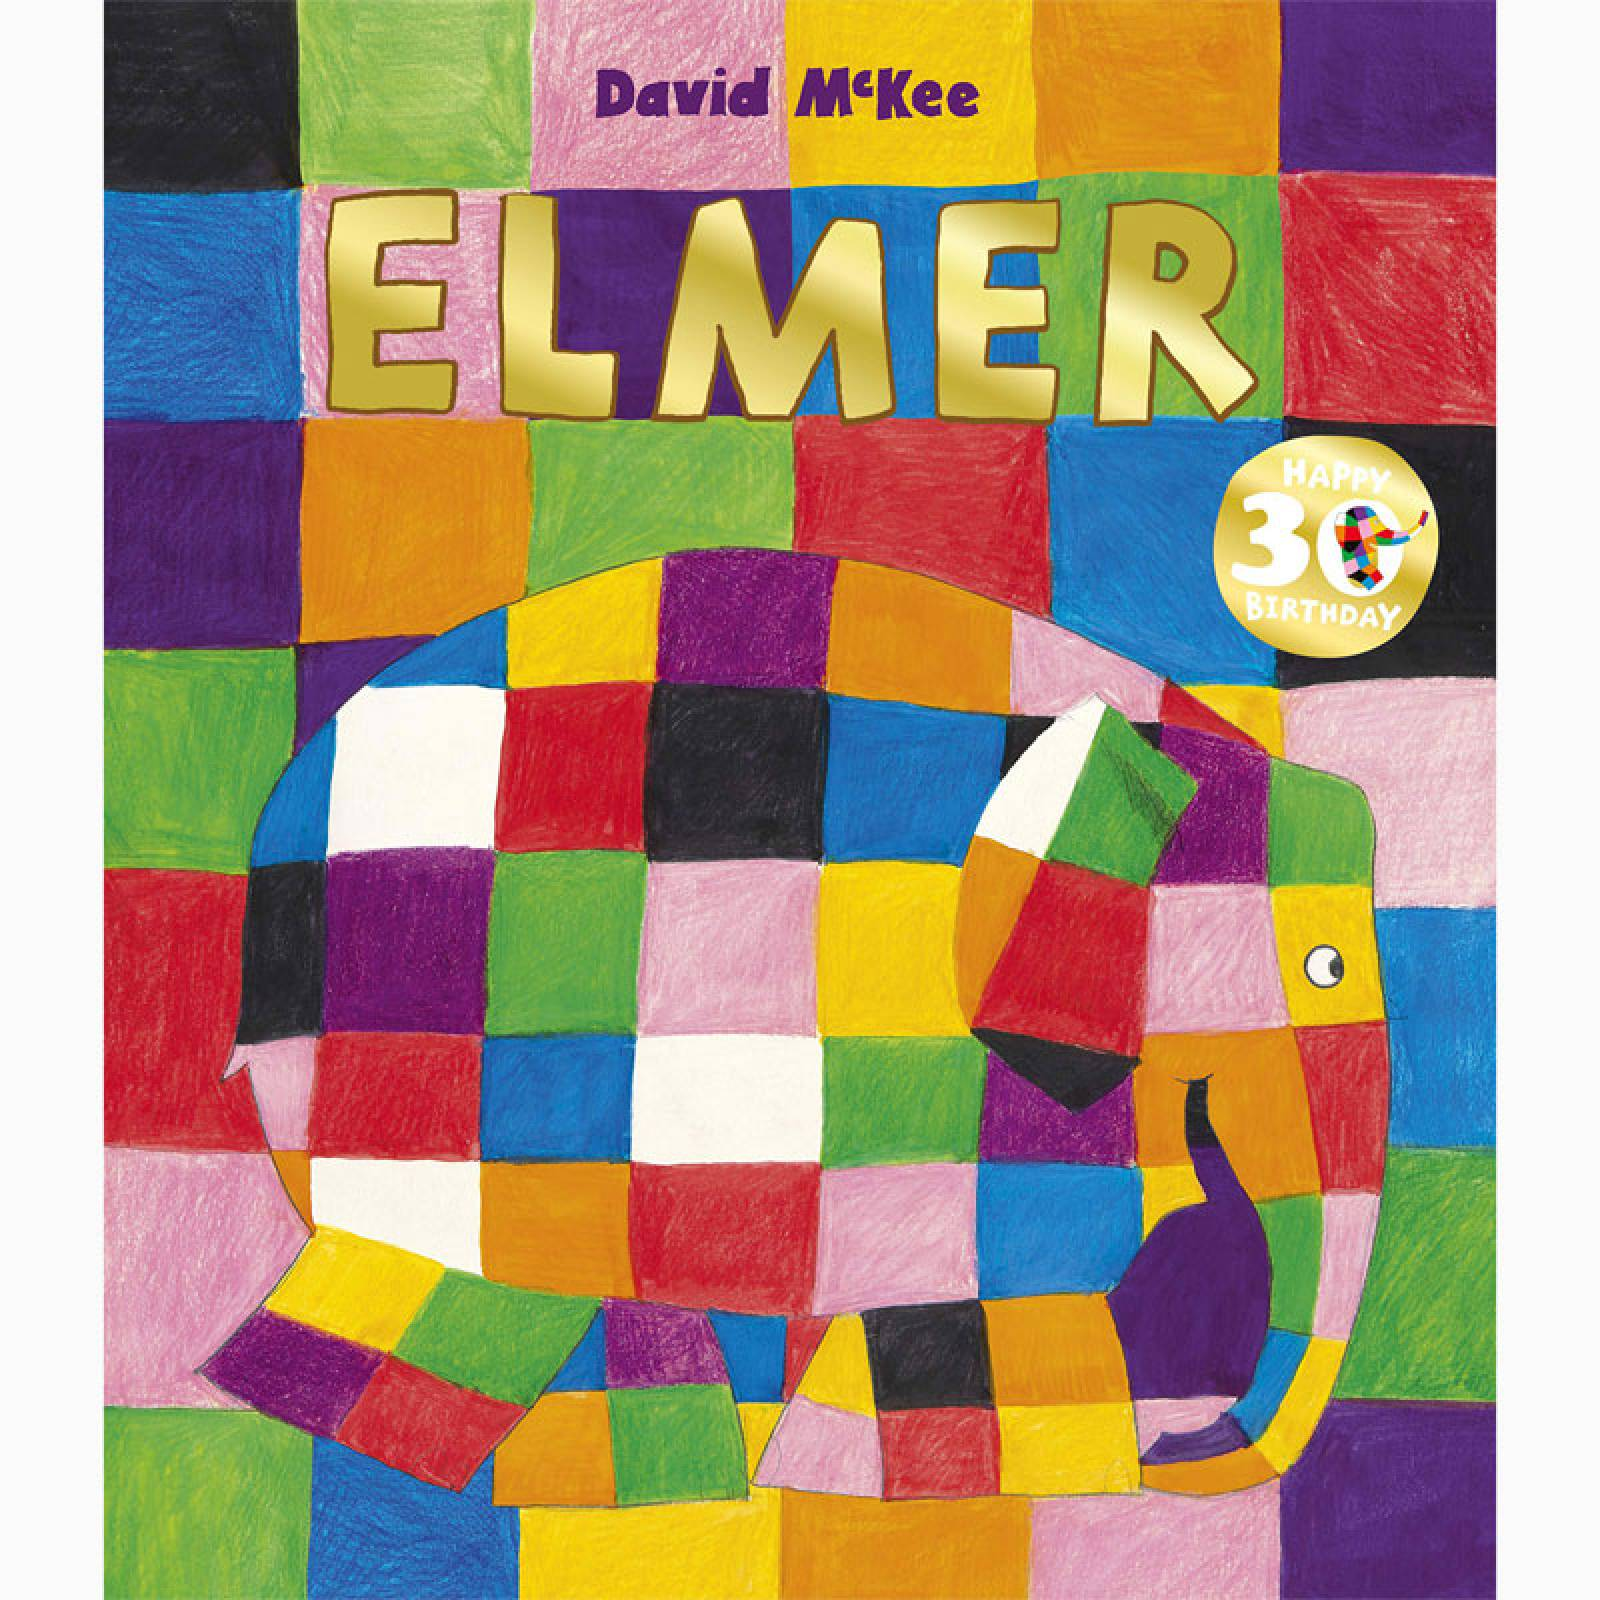 Elmer By David McKee - Paperback Book thumbnails